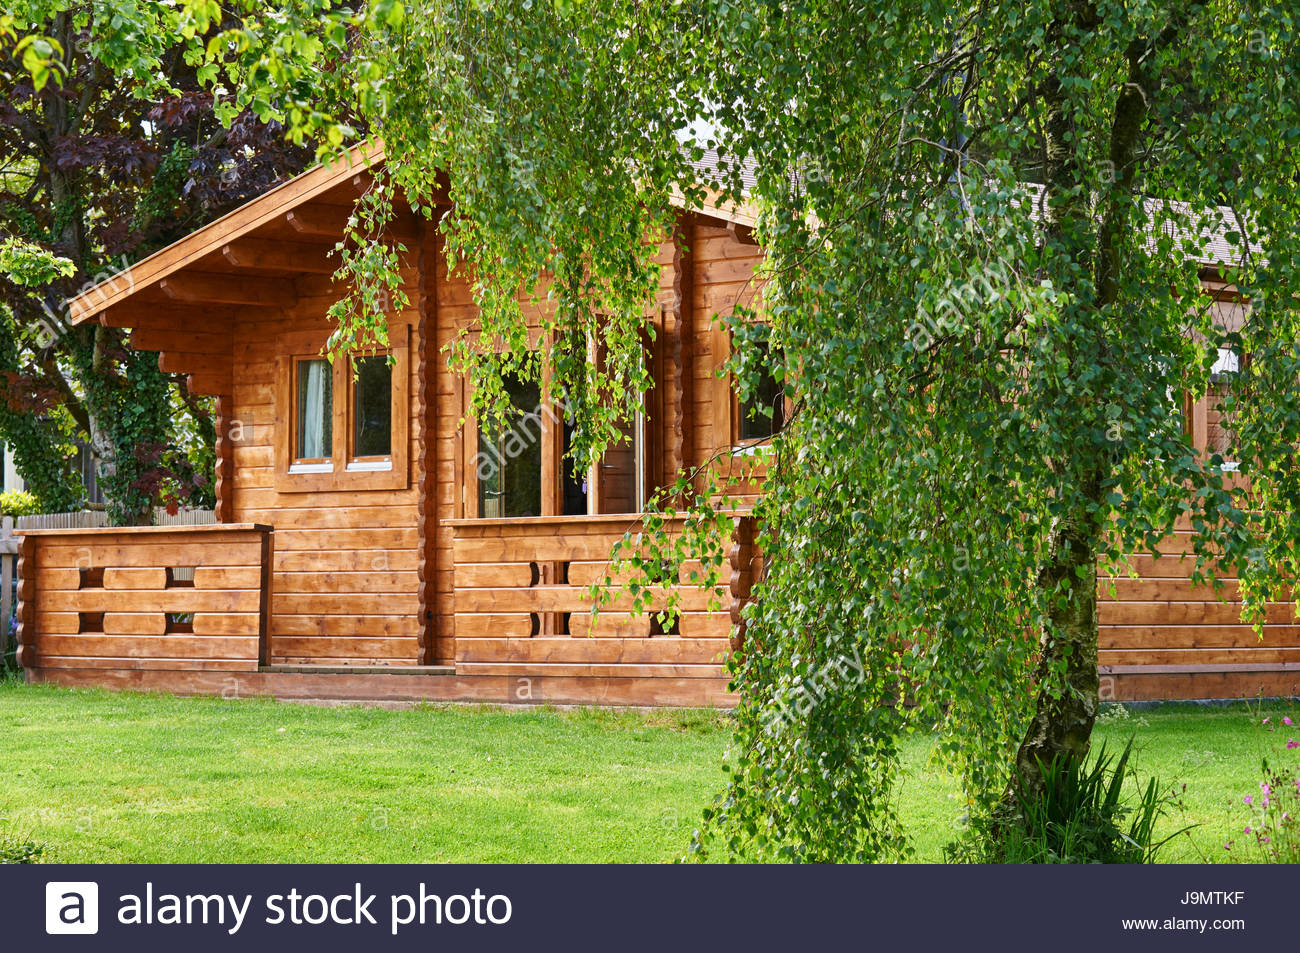 A wooden log cabin taken from under a weeping willow tree in the British uk countryside - Stock Image